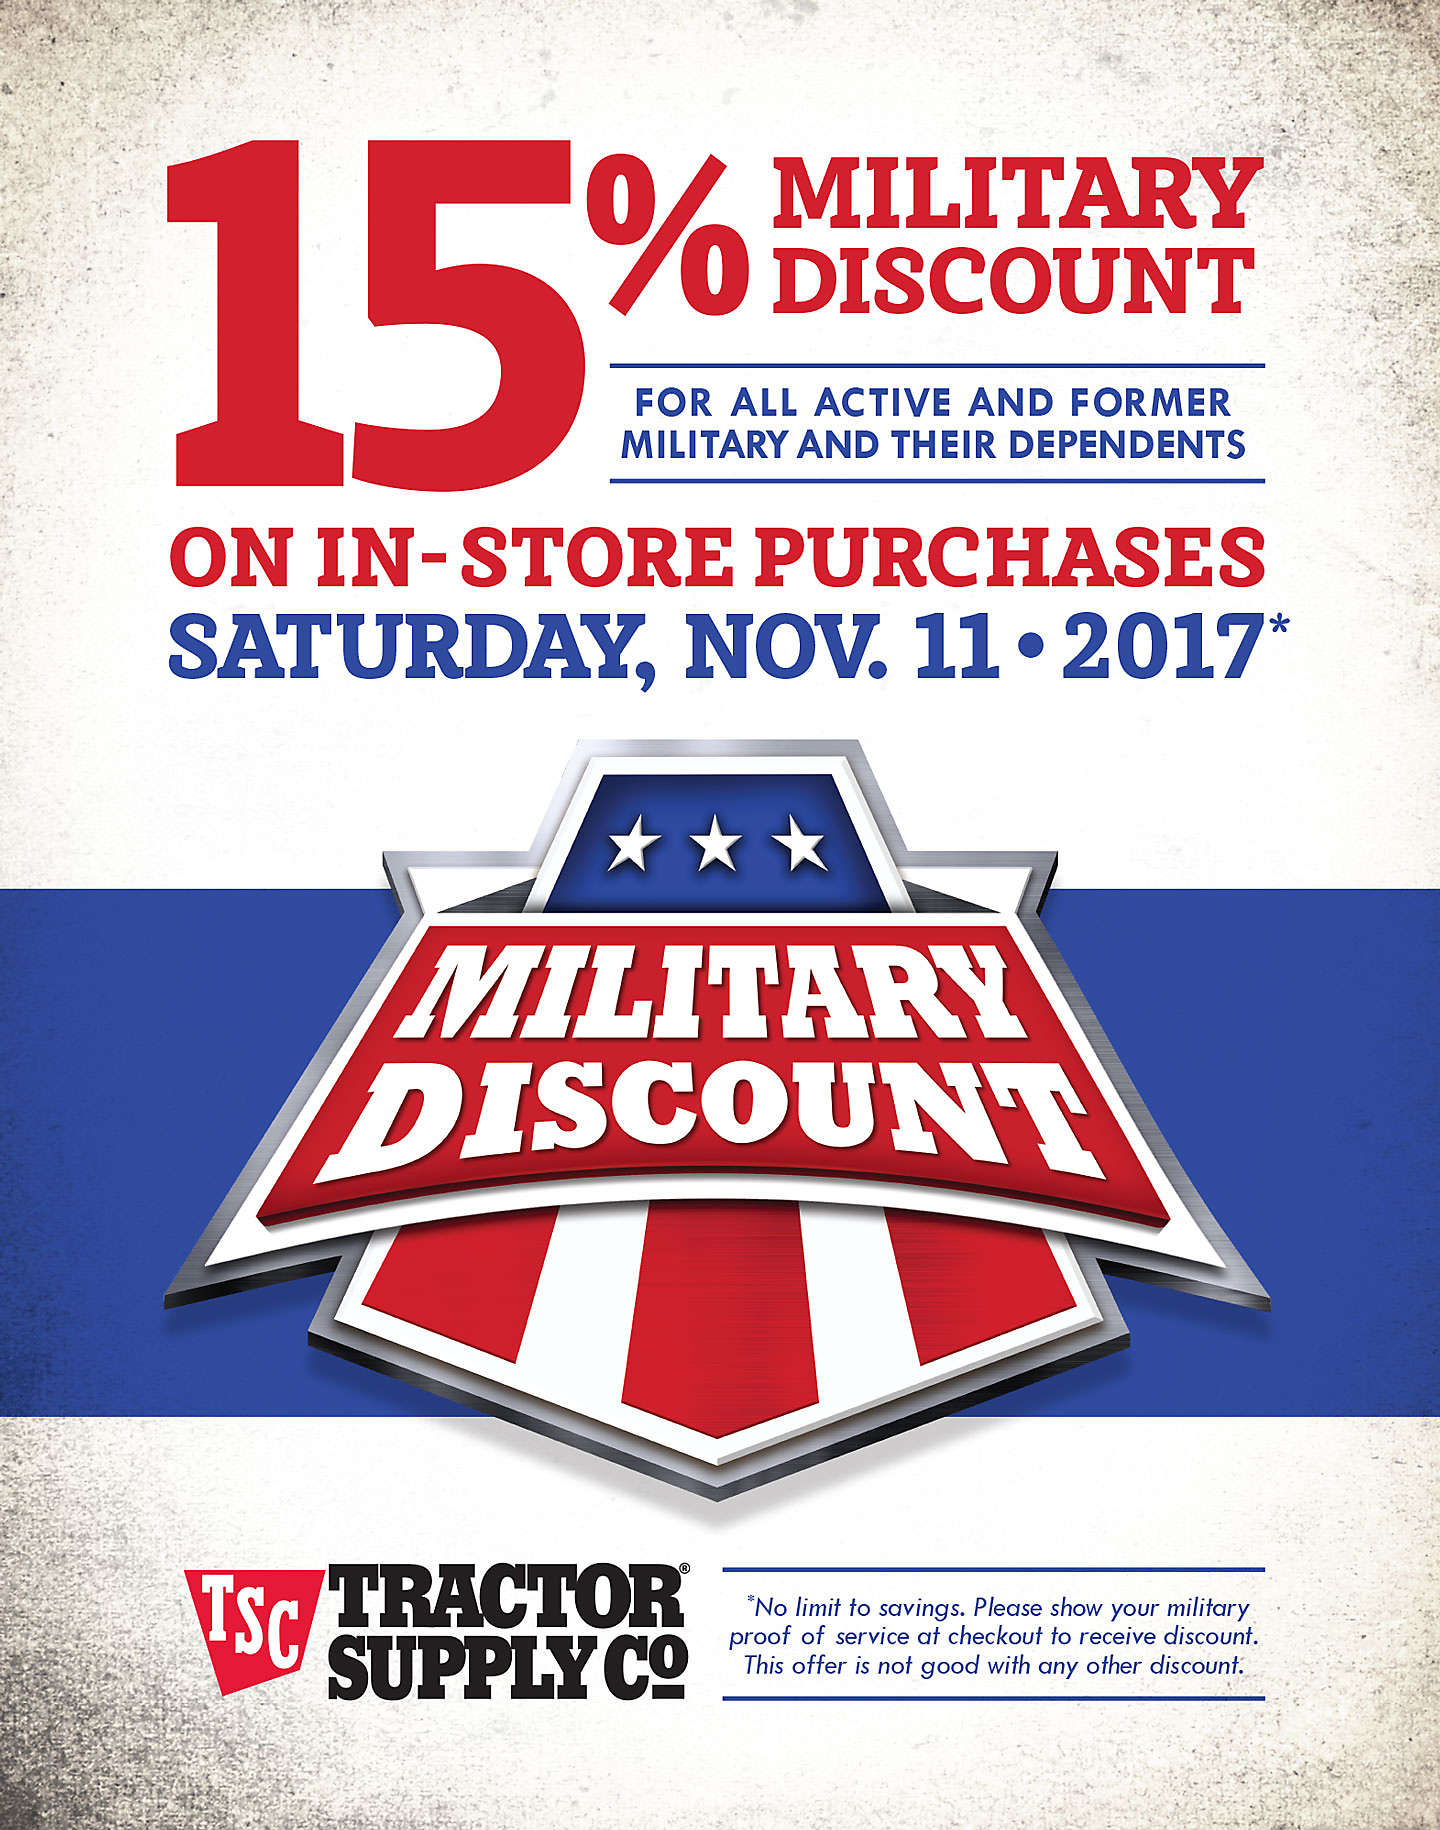 15% Military Discount for all active and former military and their dependents. In-store purchases, November 11, 2017.